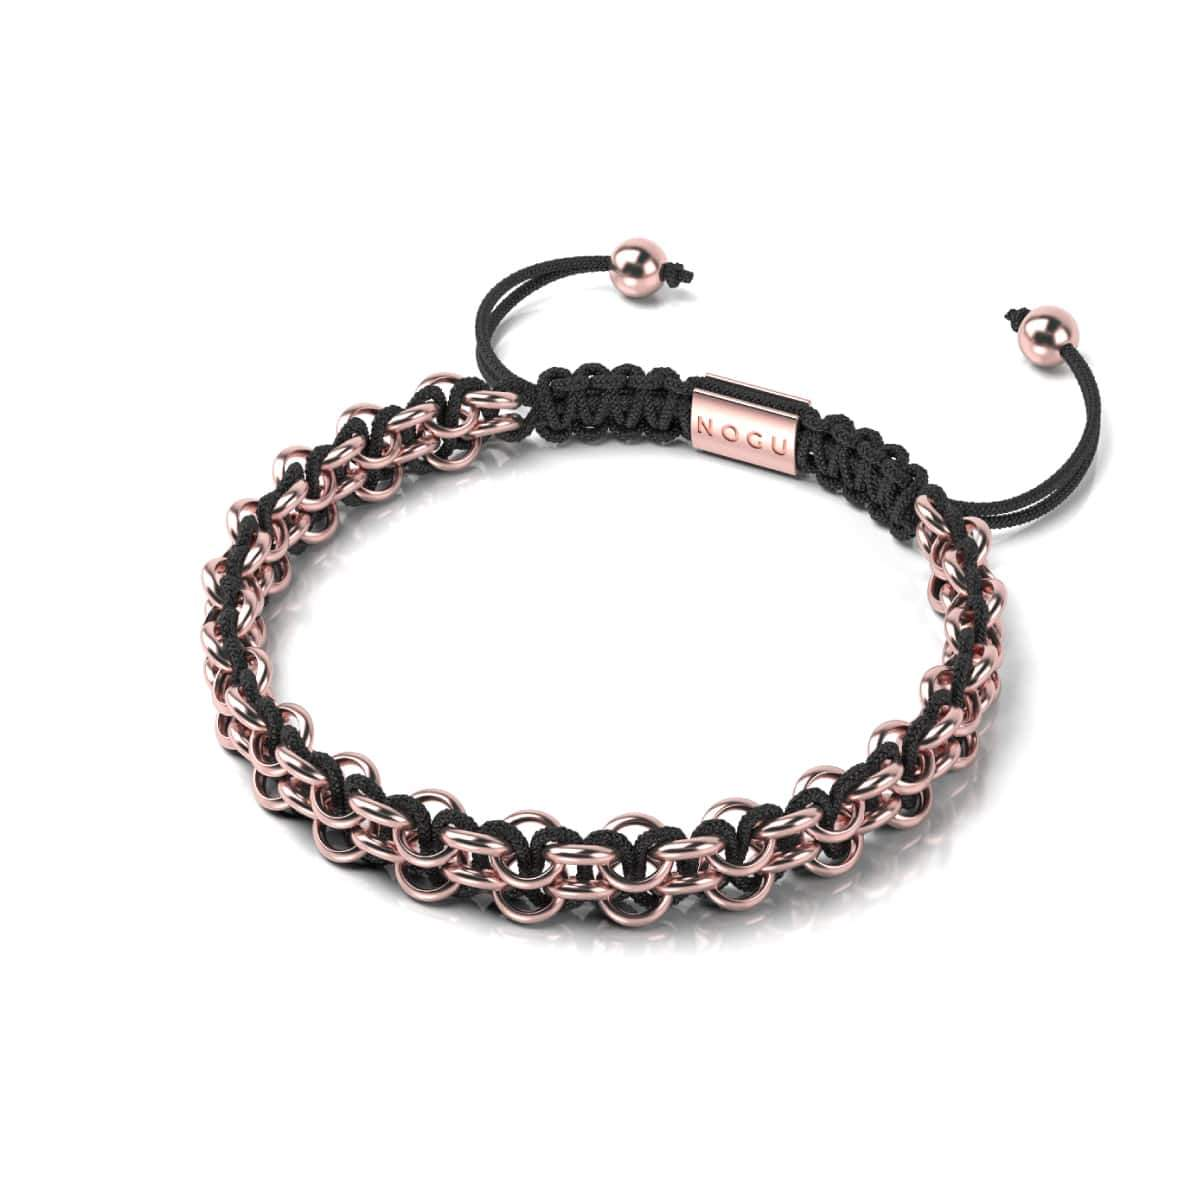 Supreme Kismet Links Bracelet | 18k Rose Gold | Black | Thin